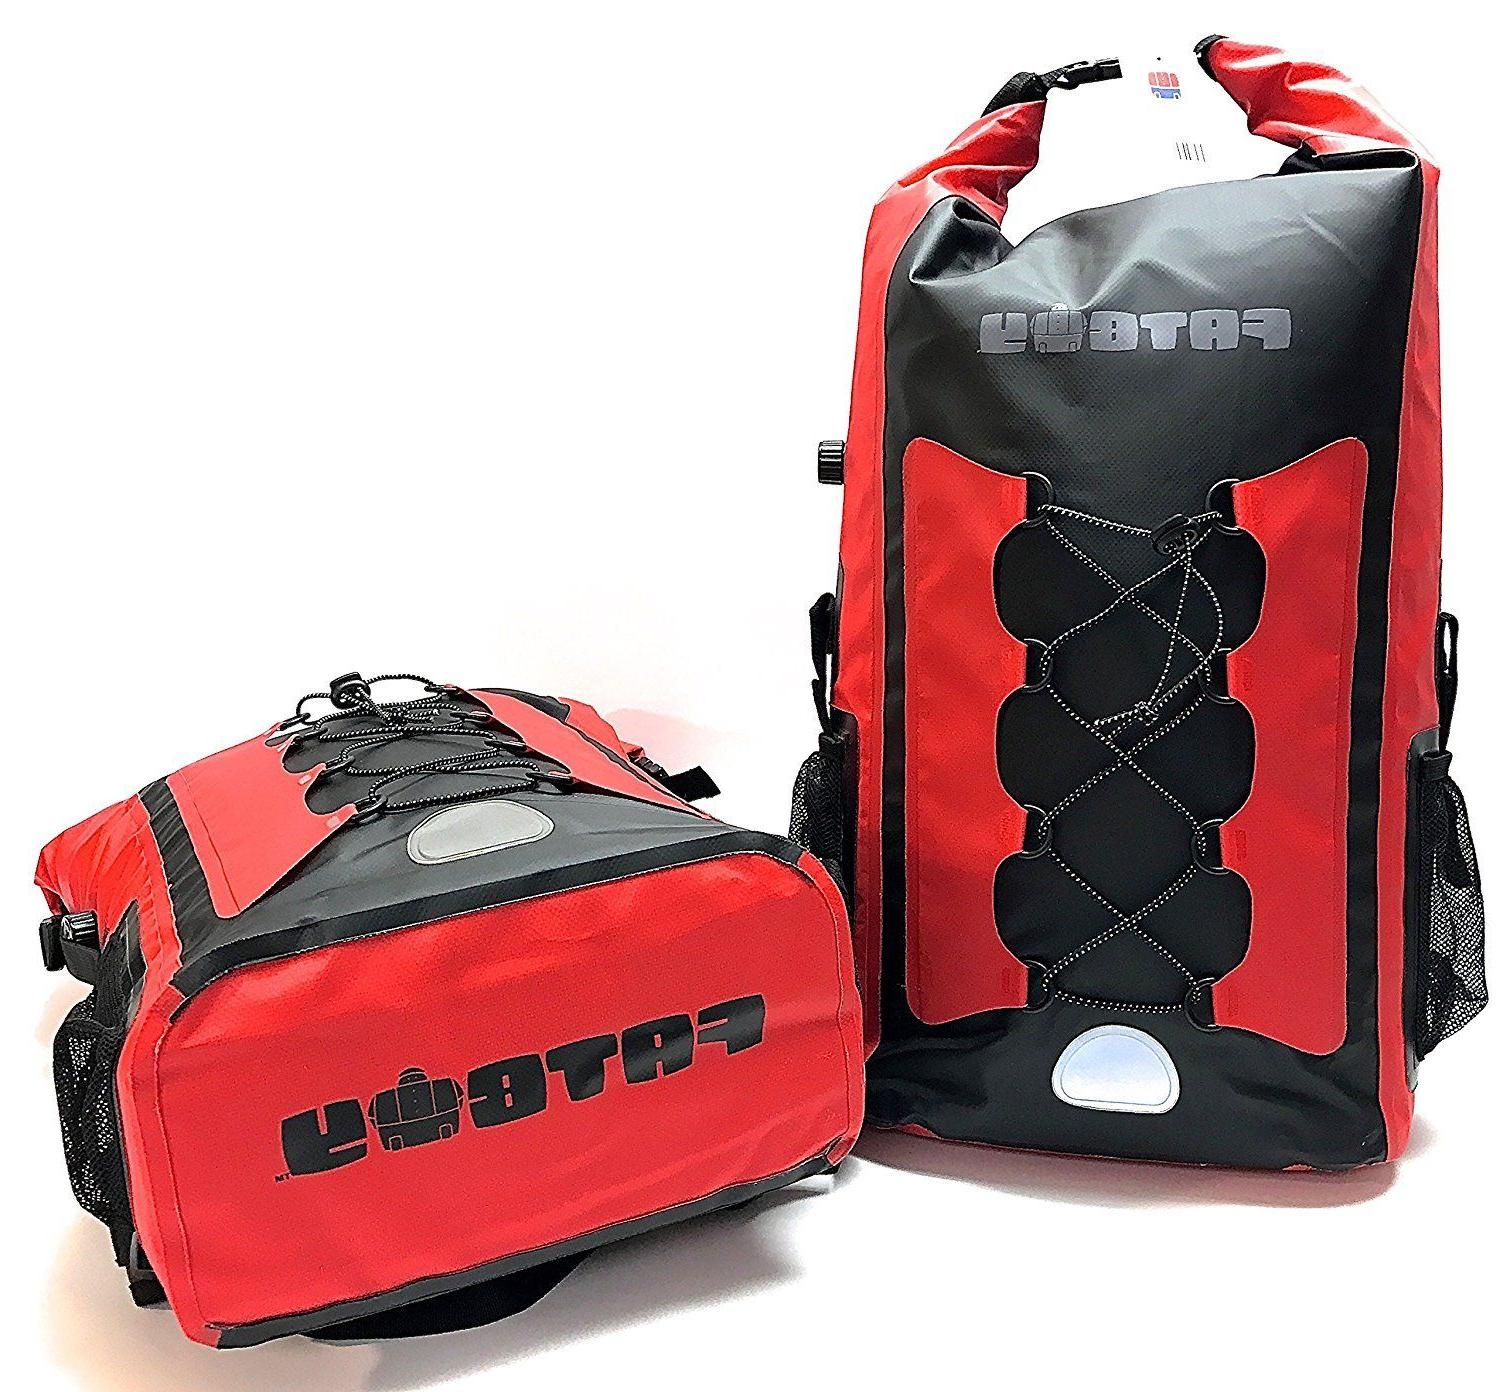 Fatboy Cooler Bag Waterproof